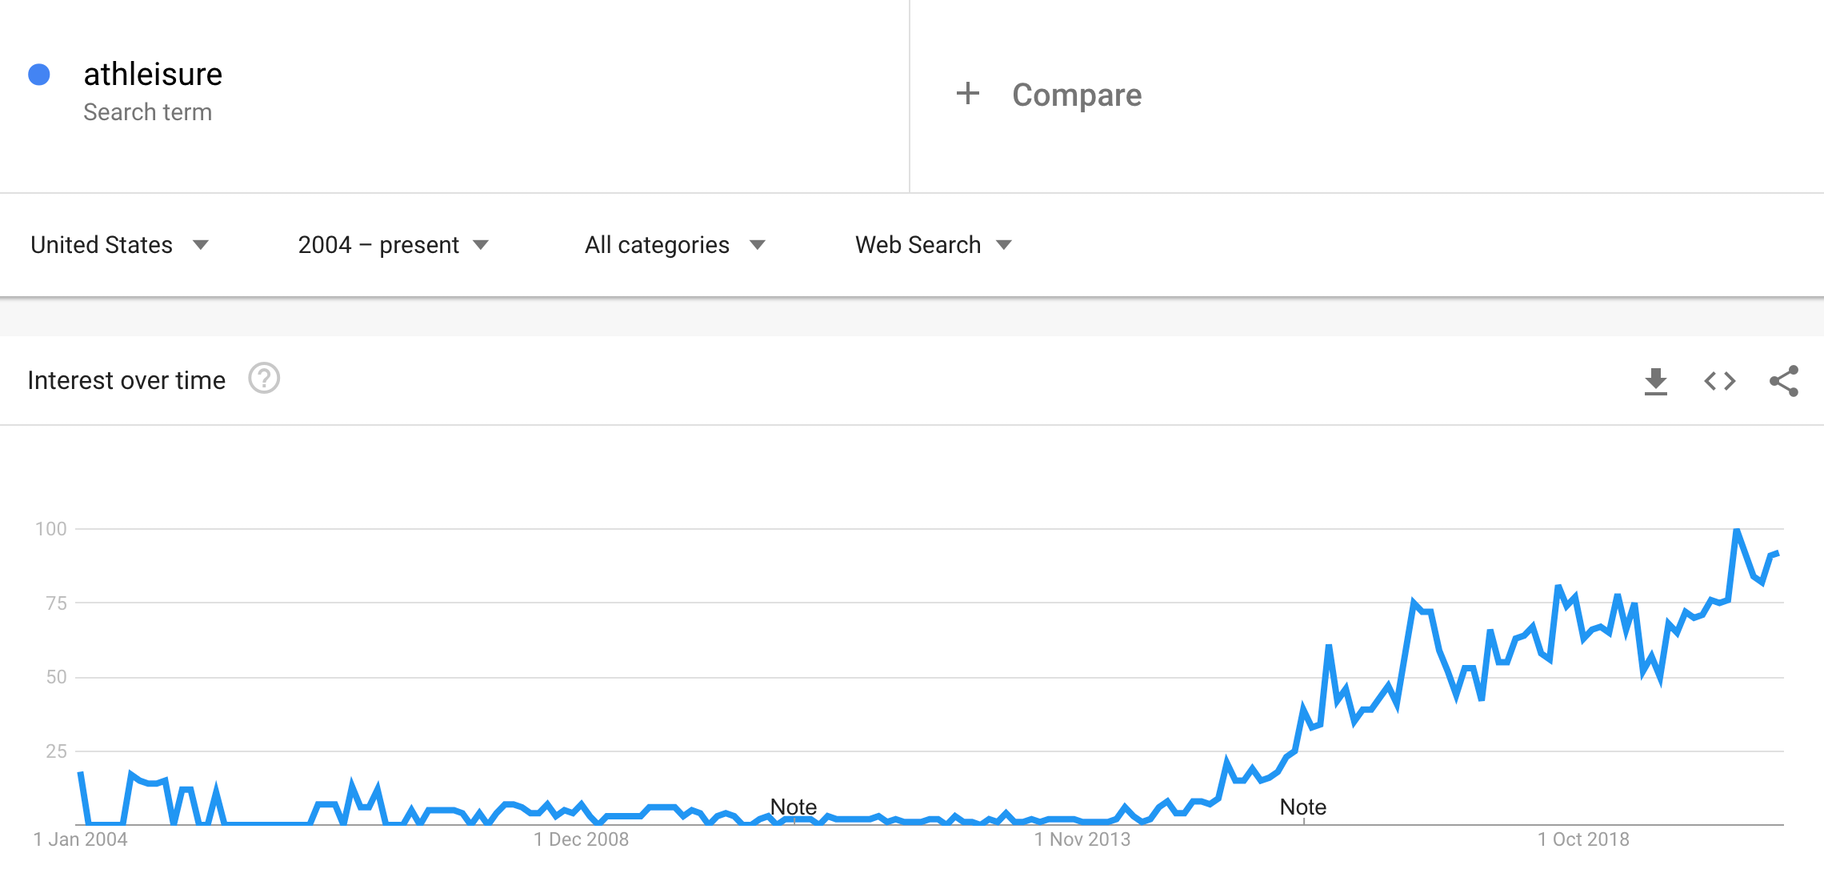 athleisure google trends